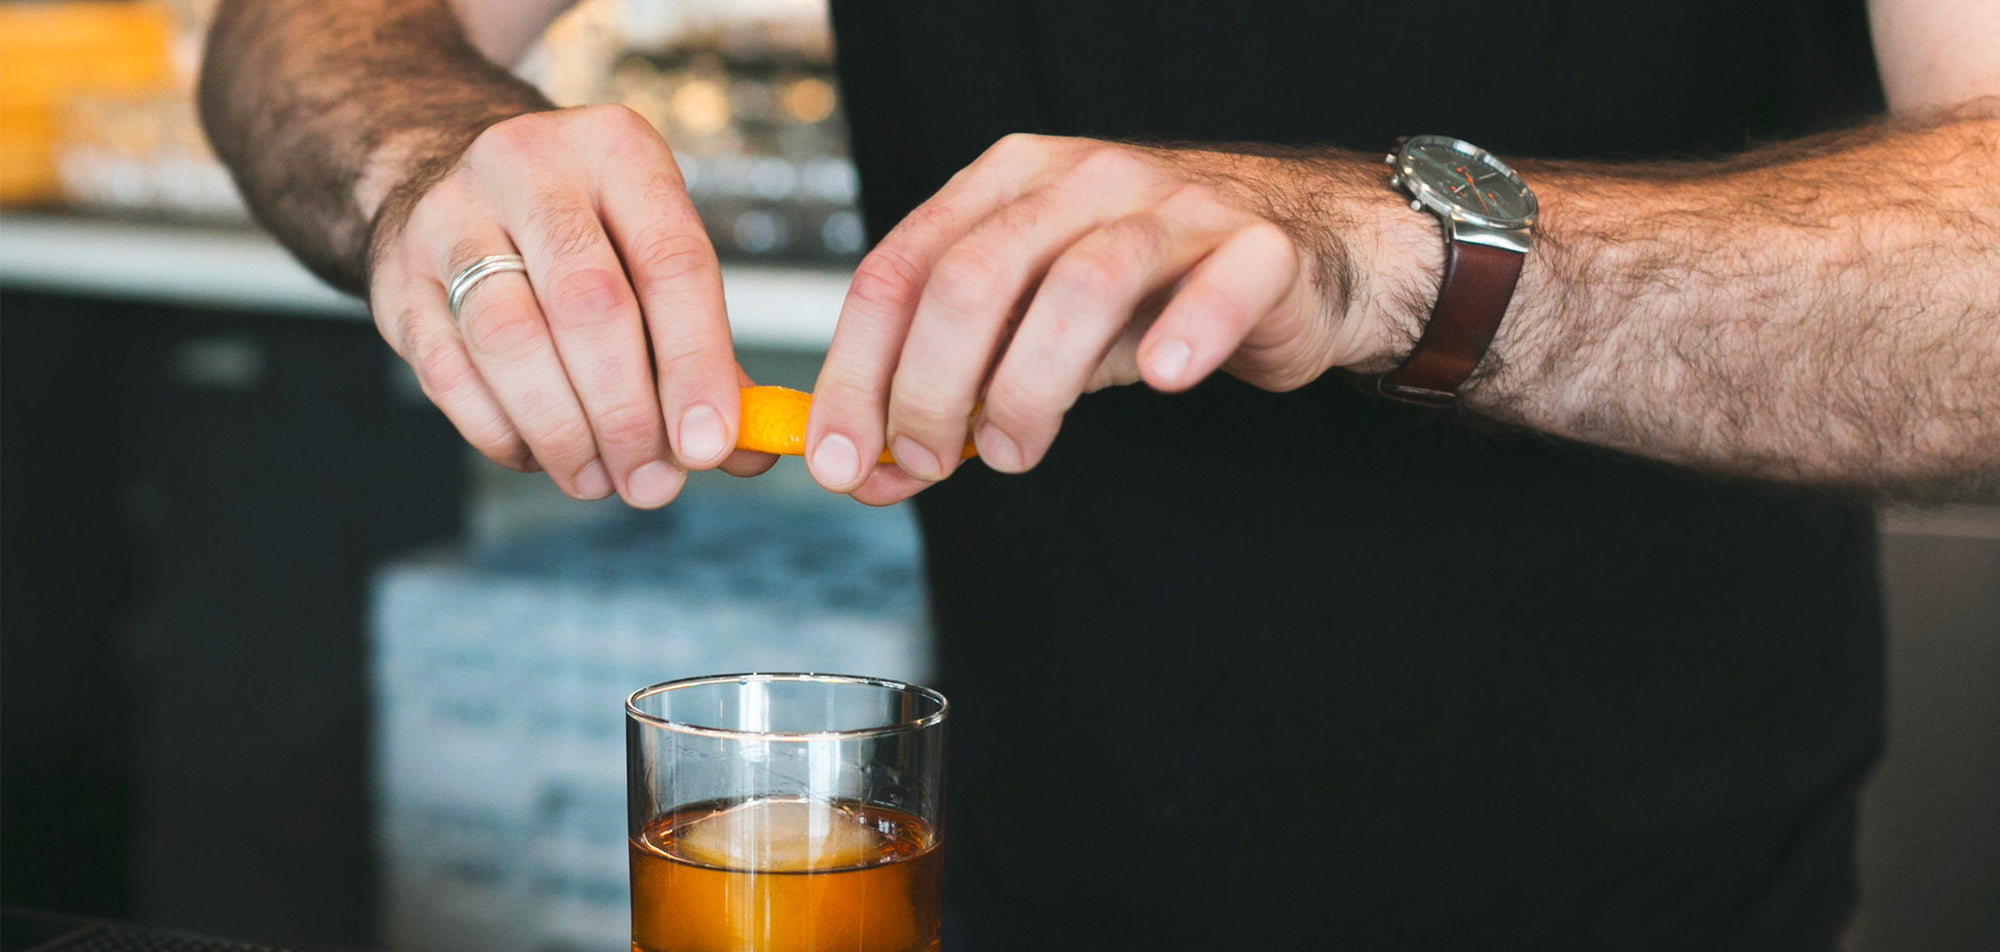 Bartending 101: Tips + Tricks for Better Drinks